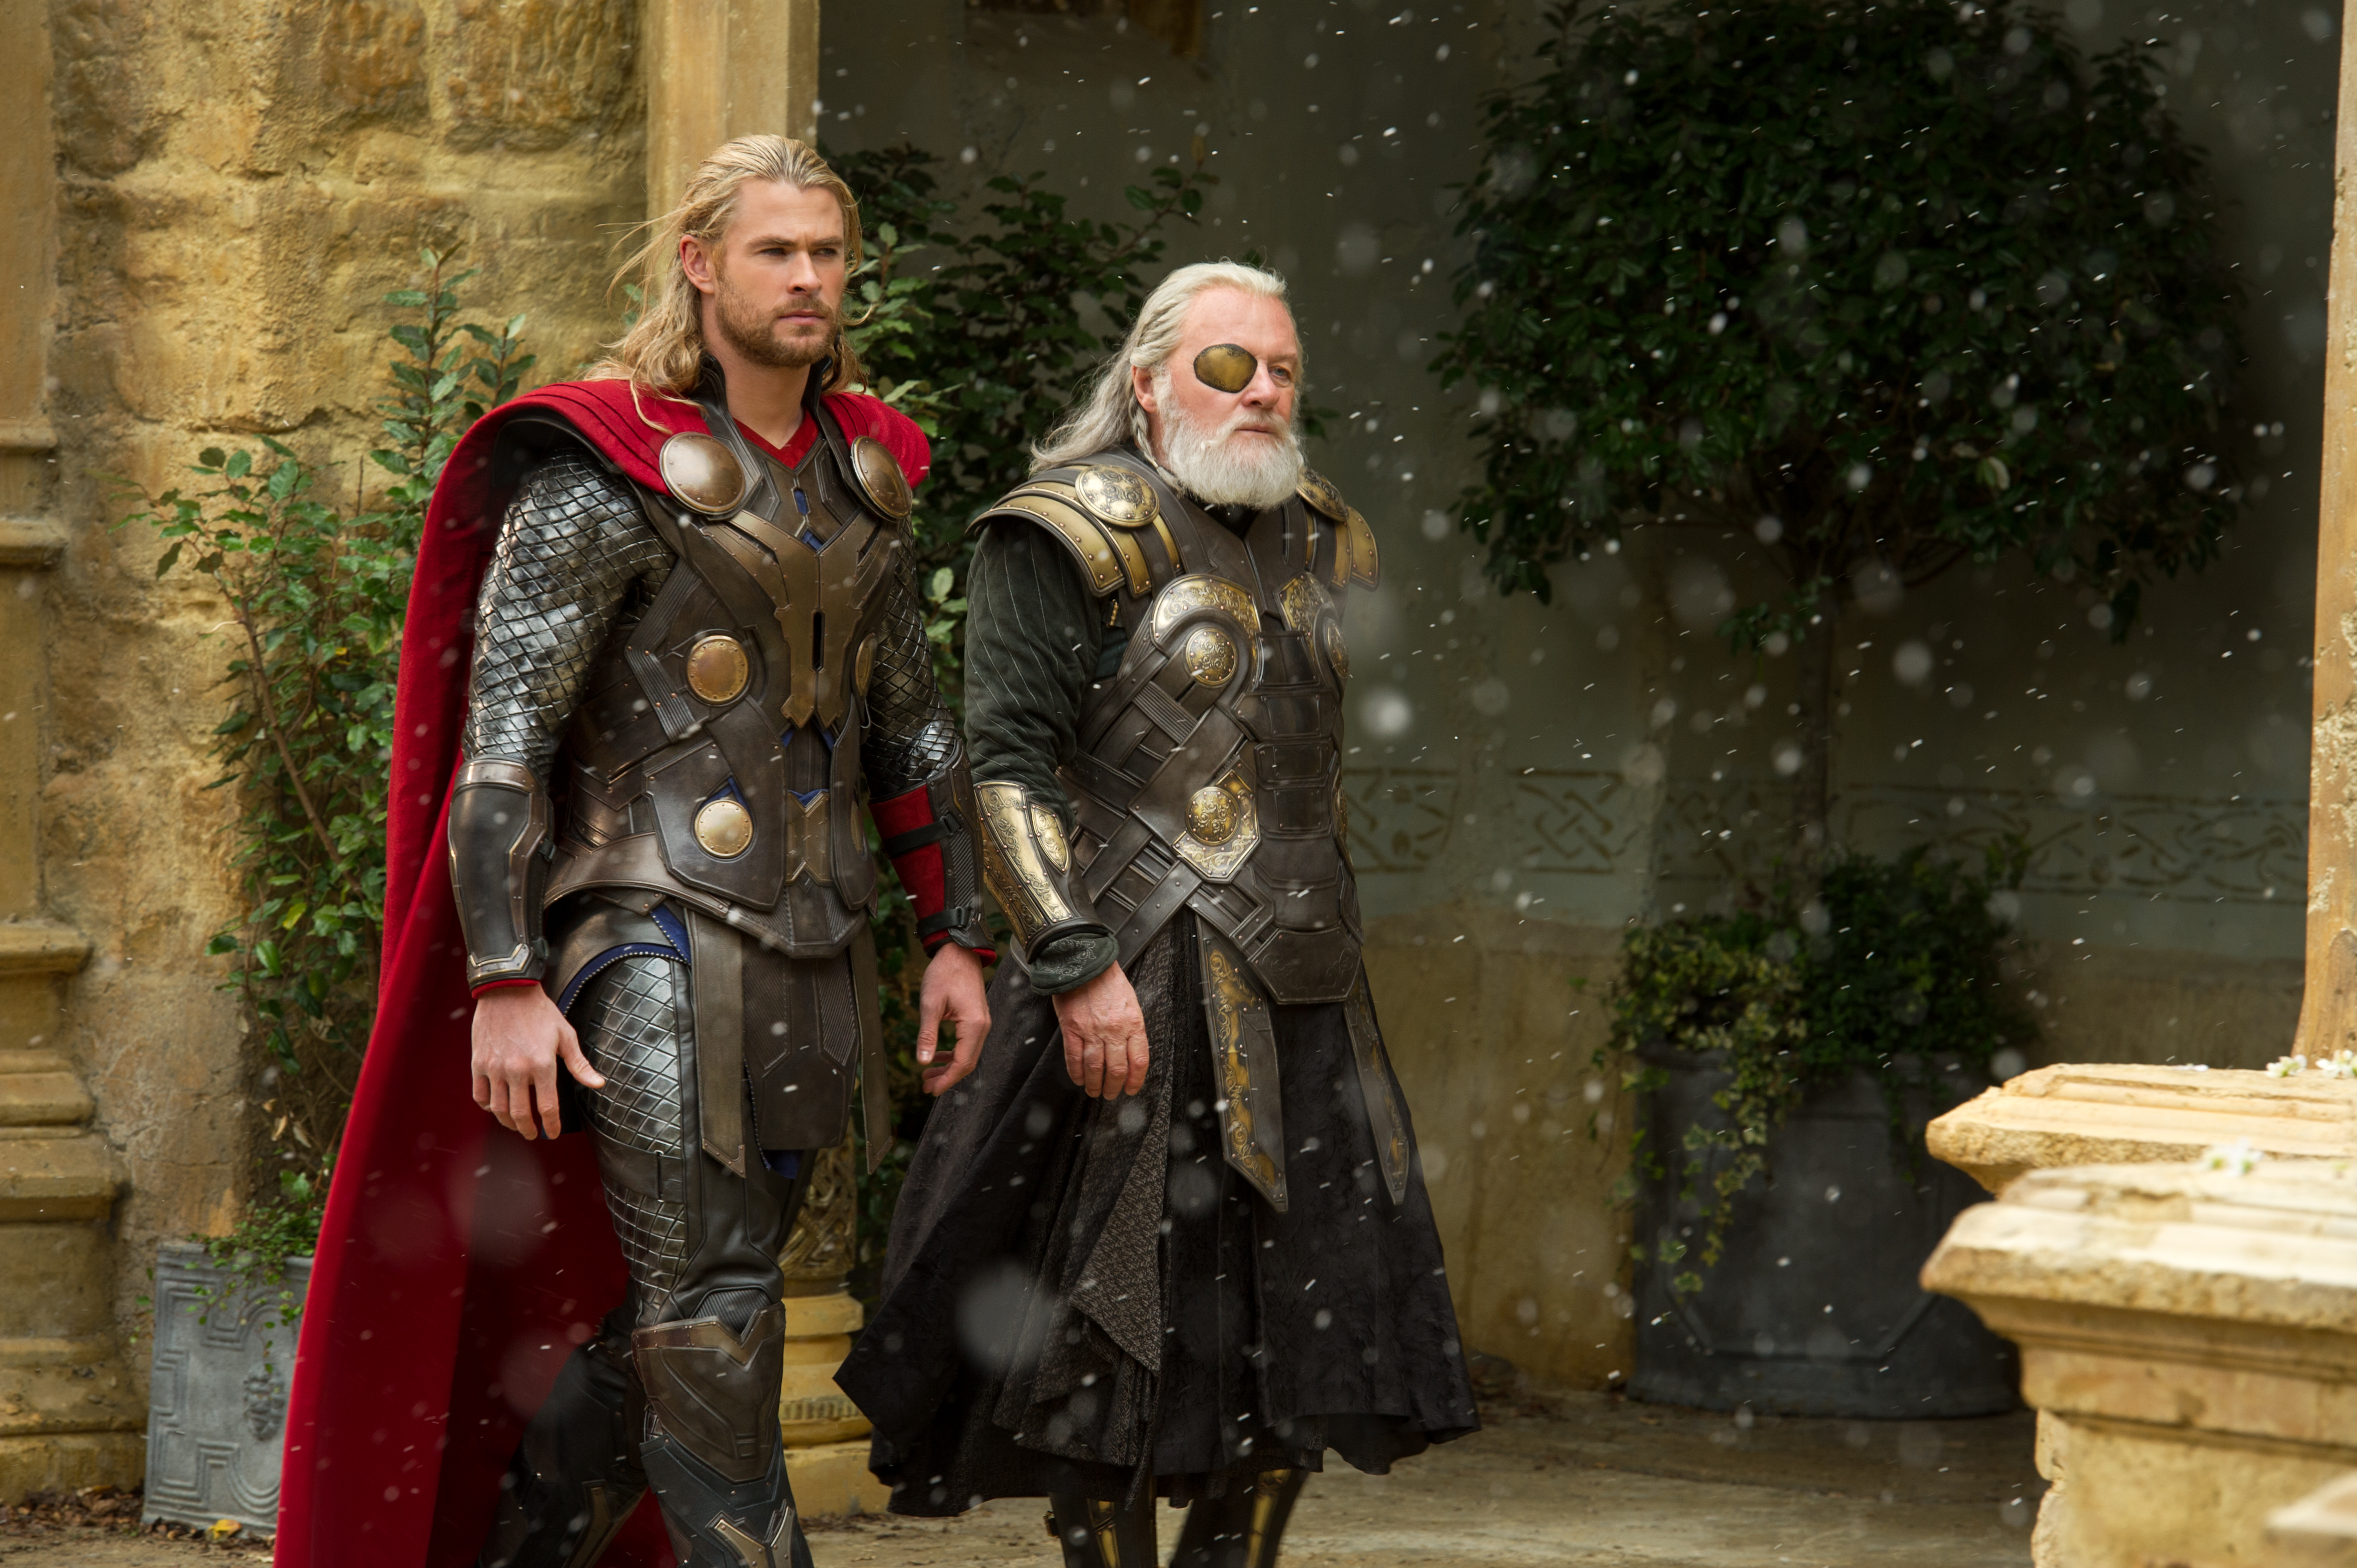 Best Wallpaper Marvel Odin - odin-and-thor-5k-fg  Perfect Image Reference_906410.jpg